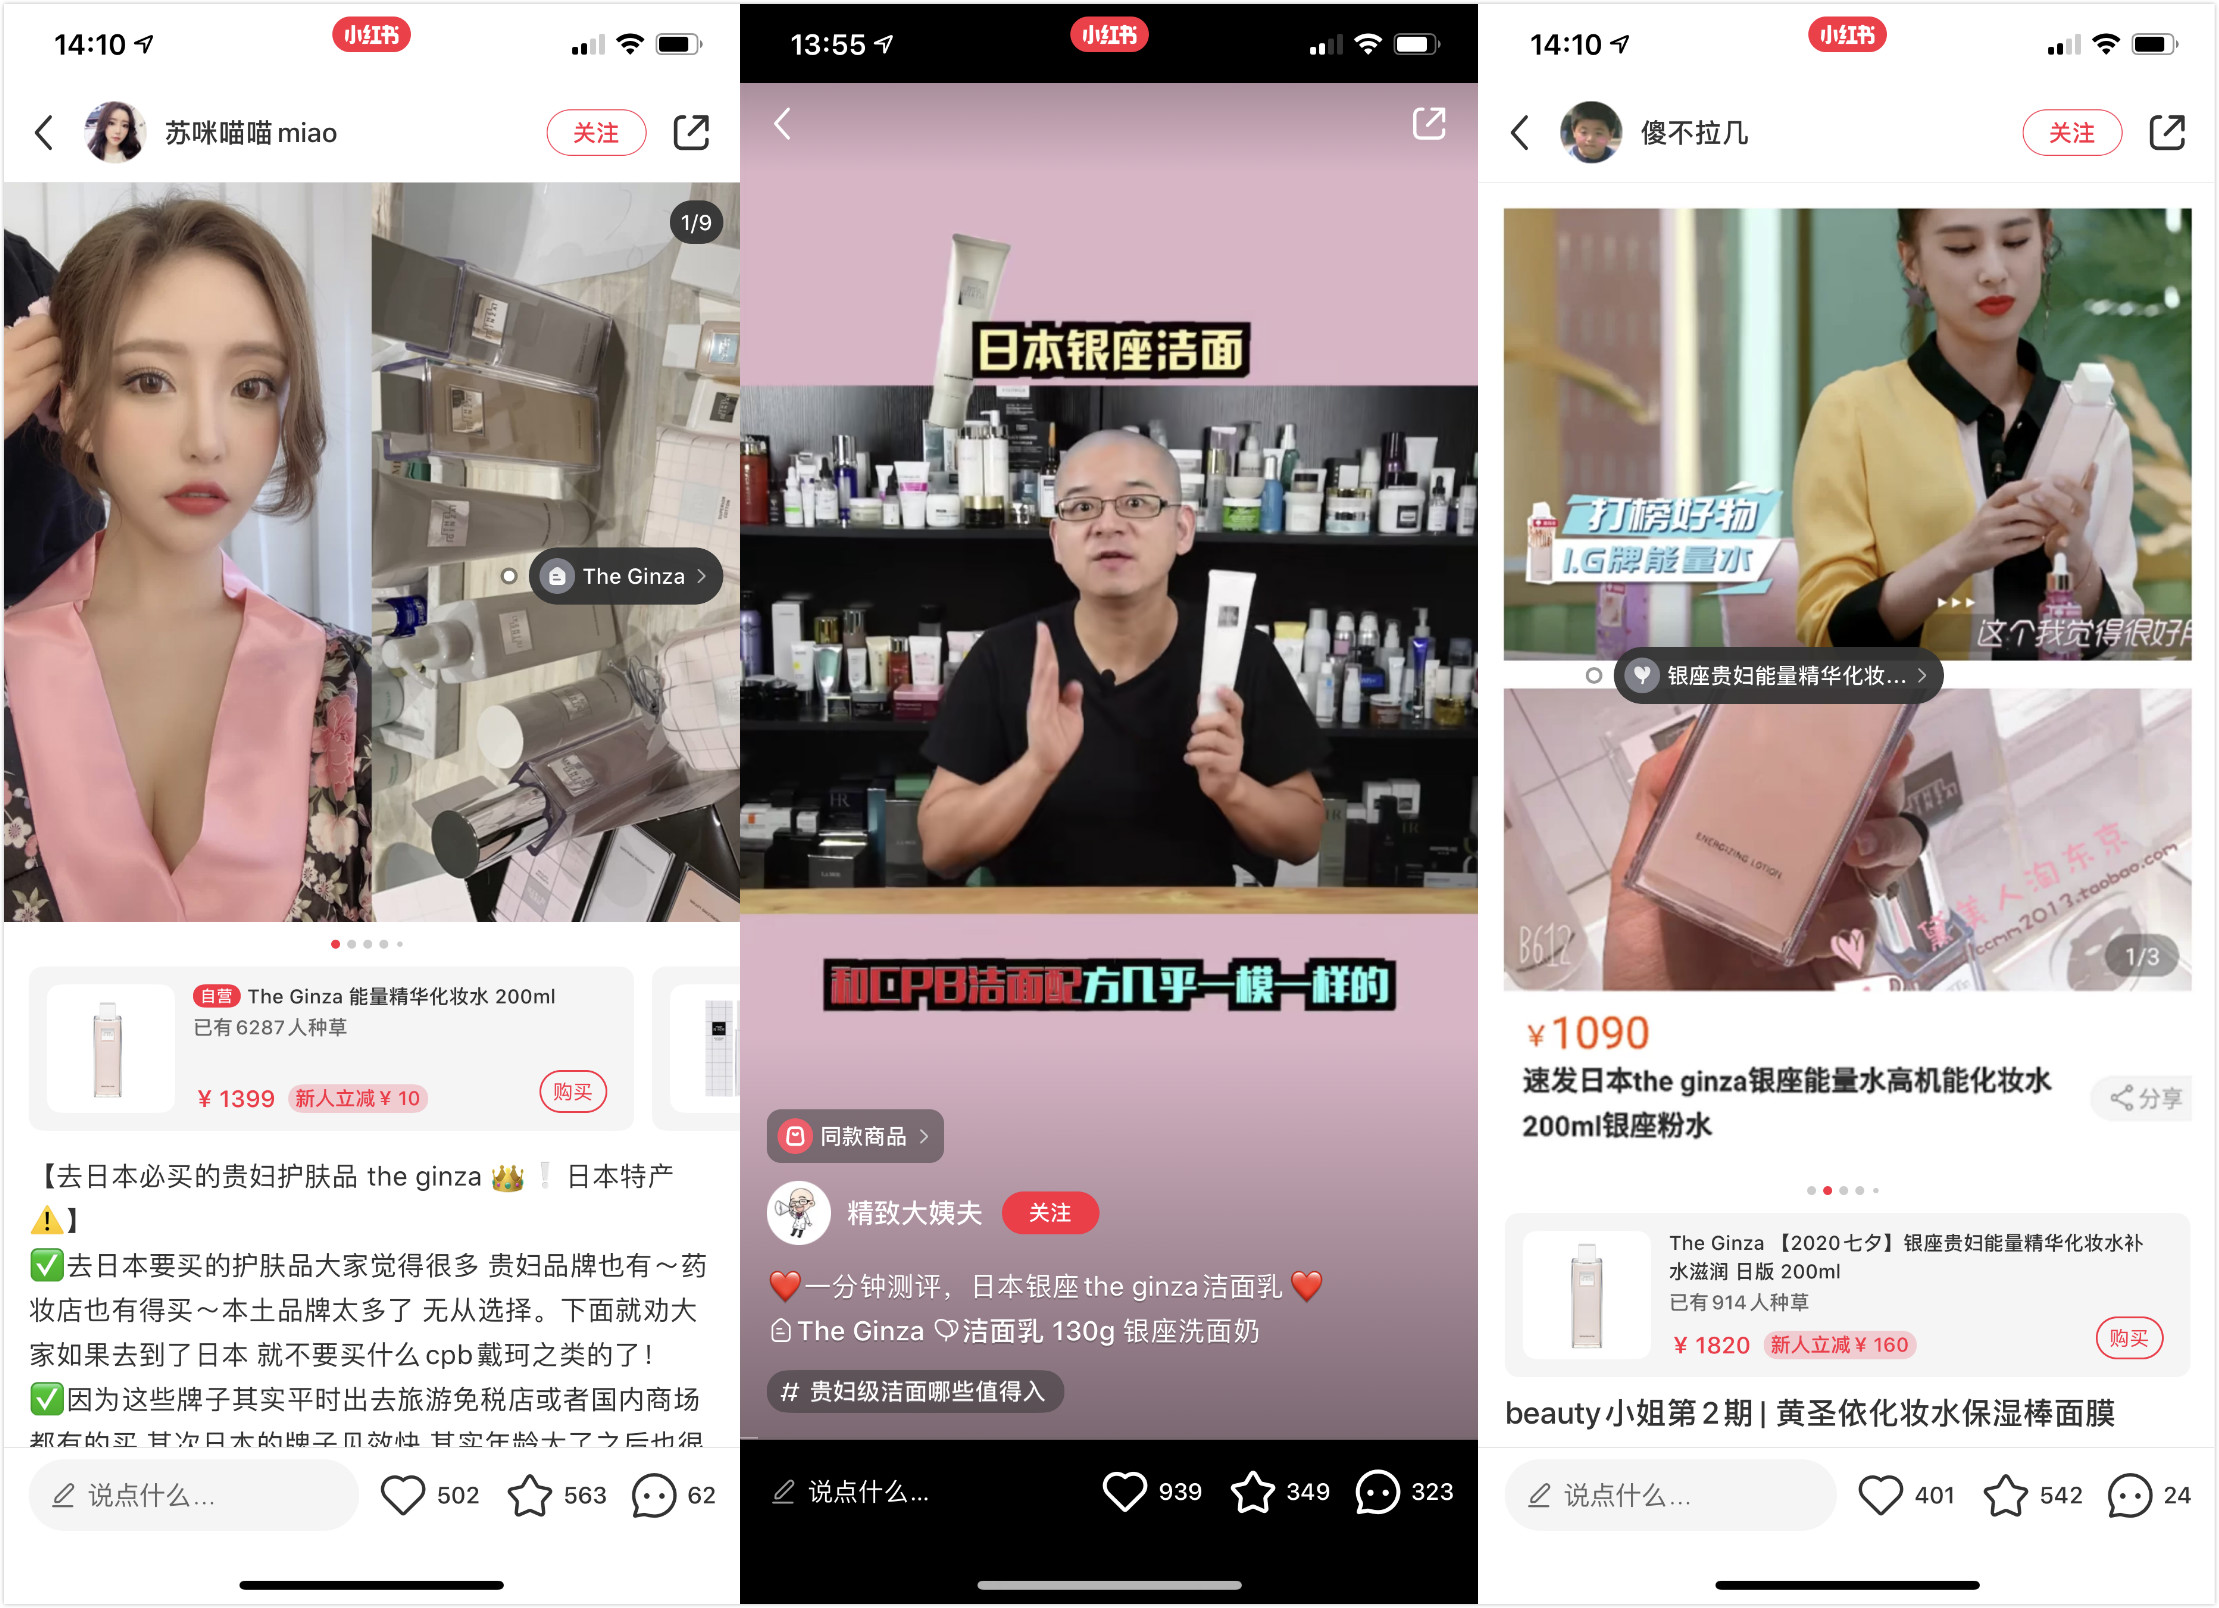 Screenshots of Xiaohongshu users recommending products from The Ginza.